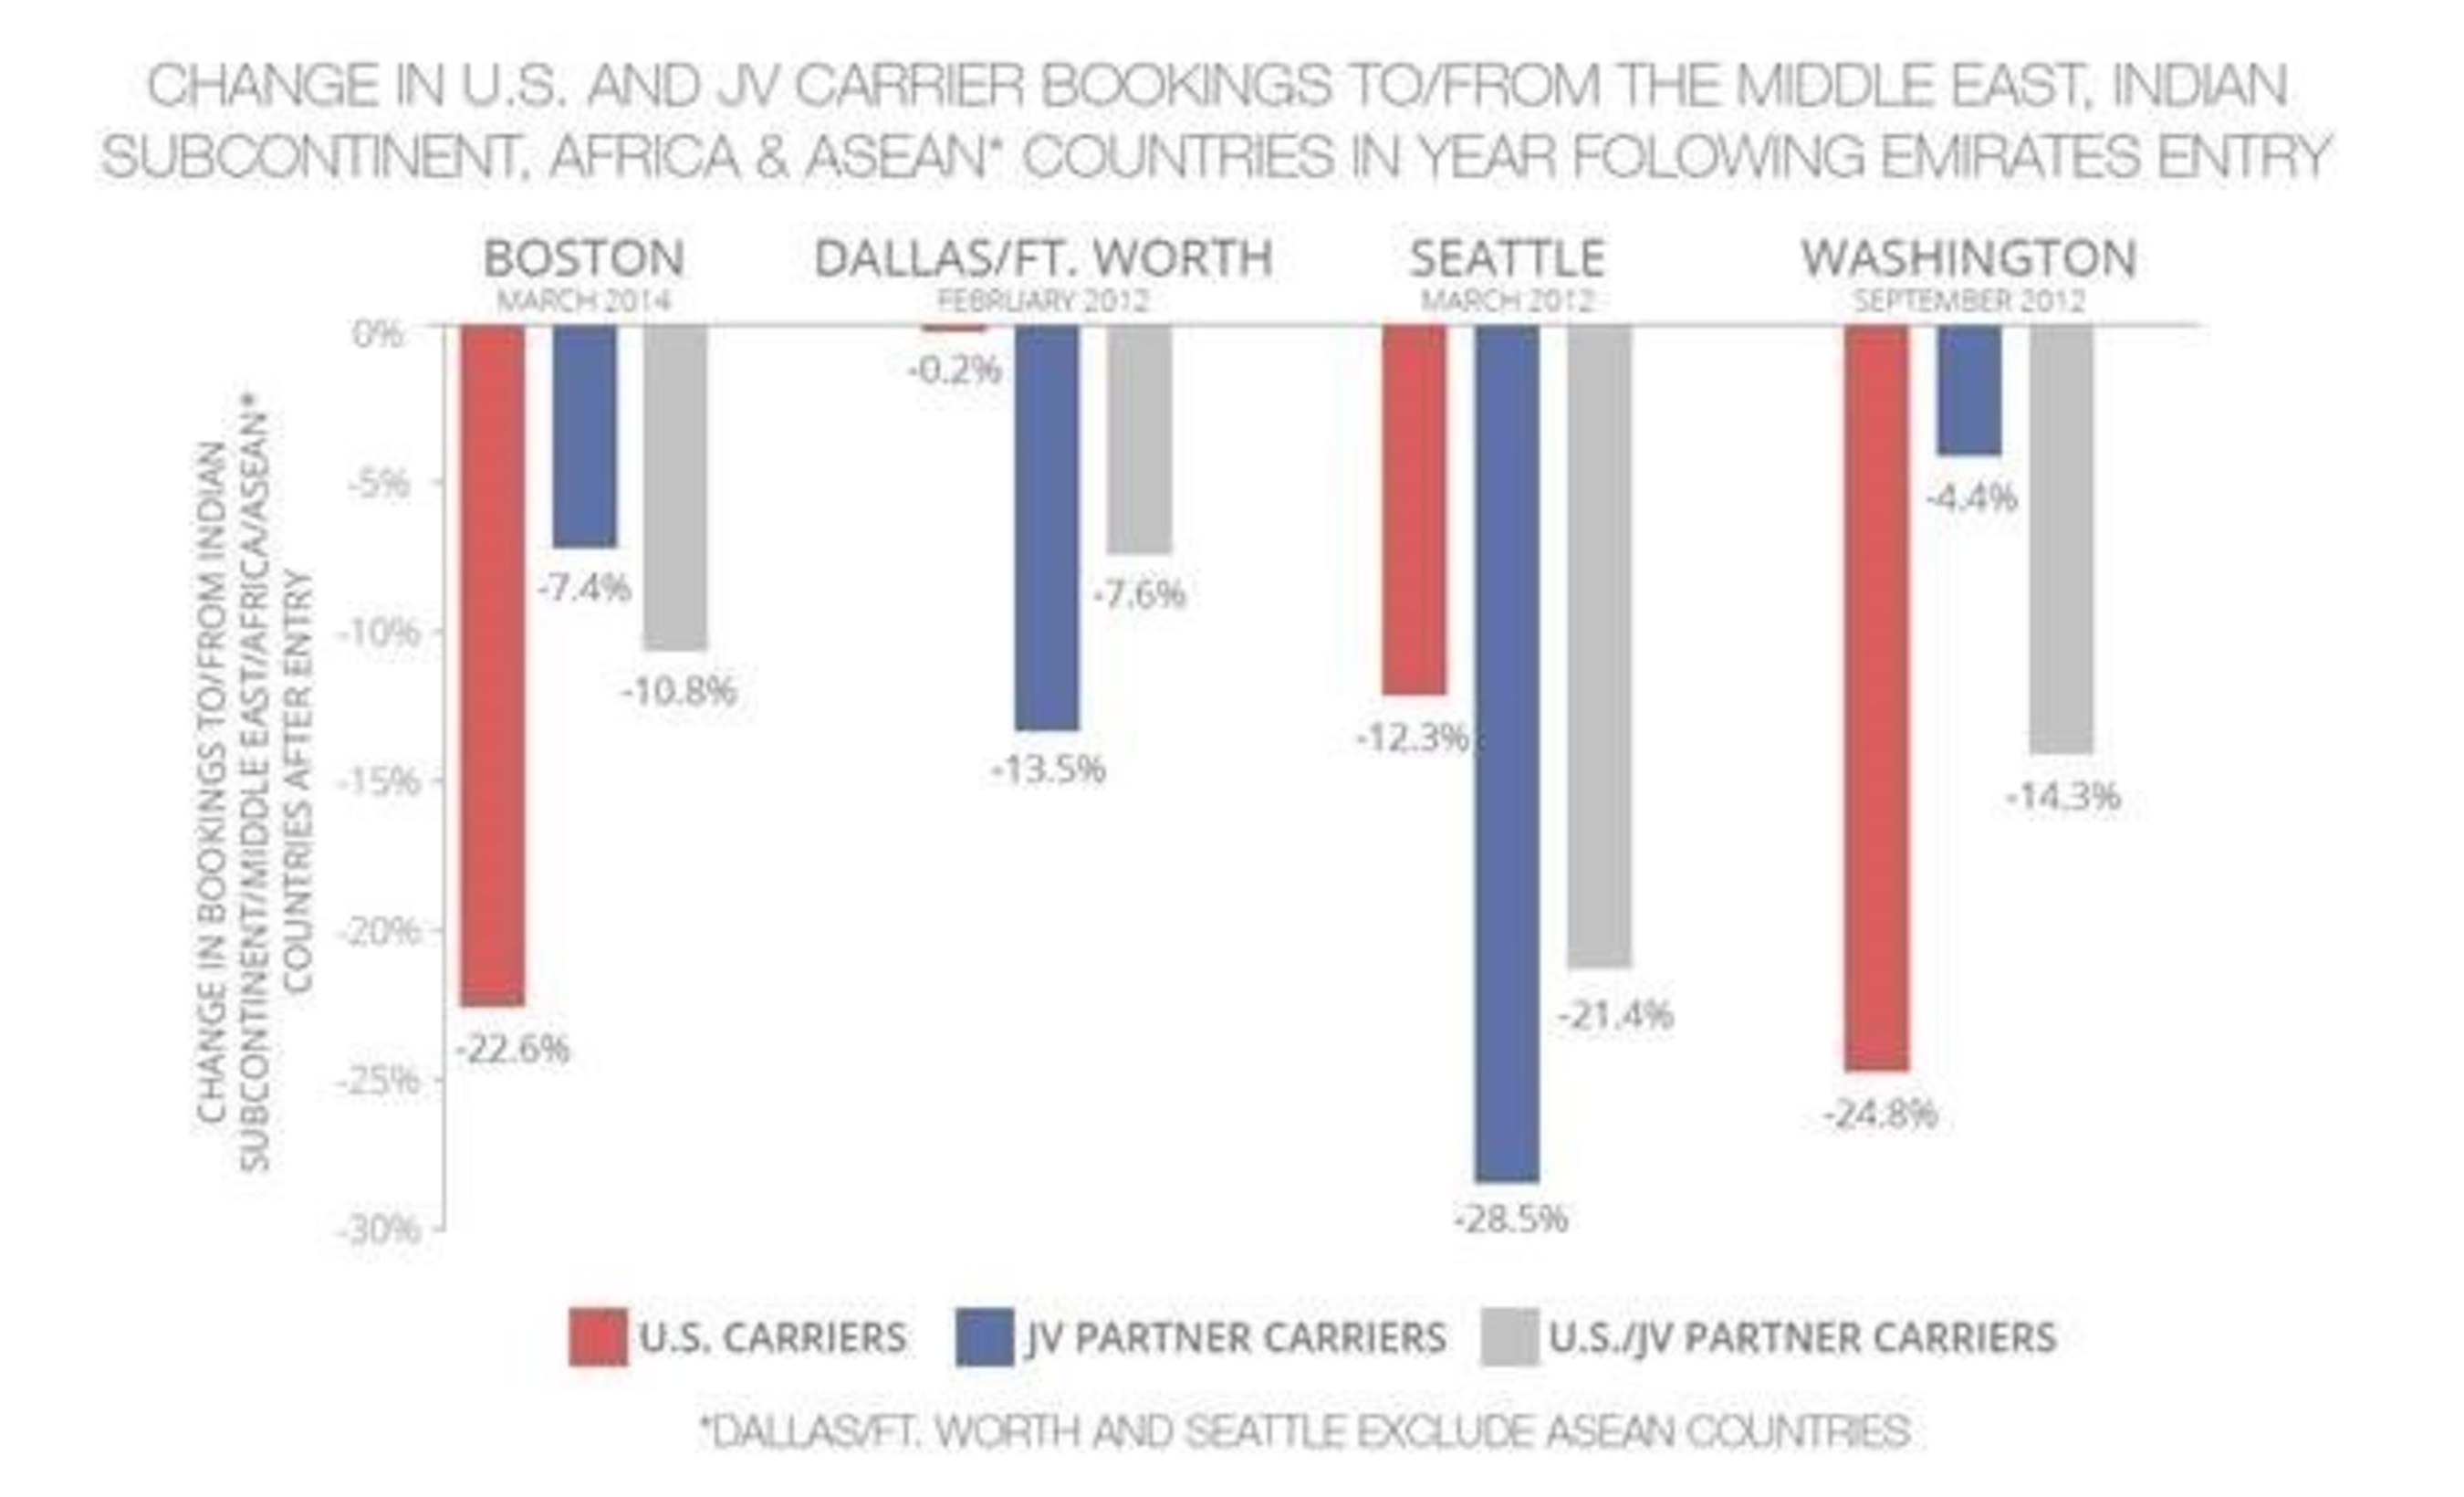 Change in U.S. and JV Carrier Bookings